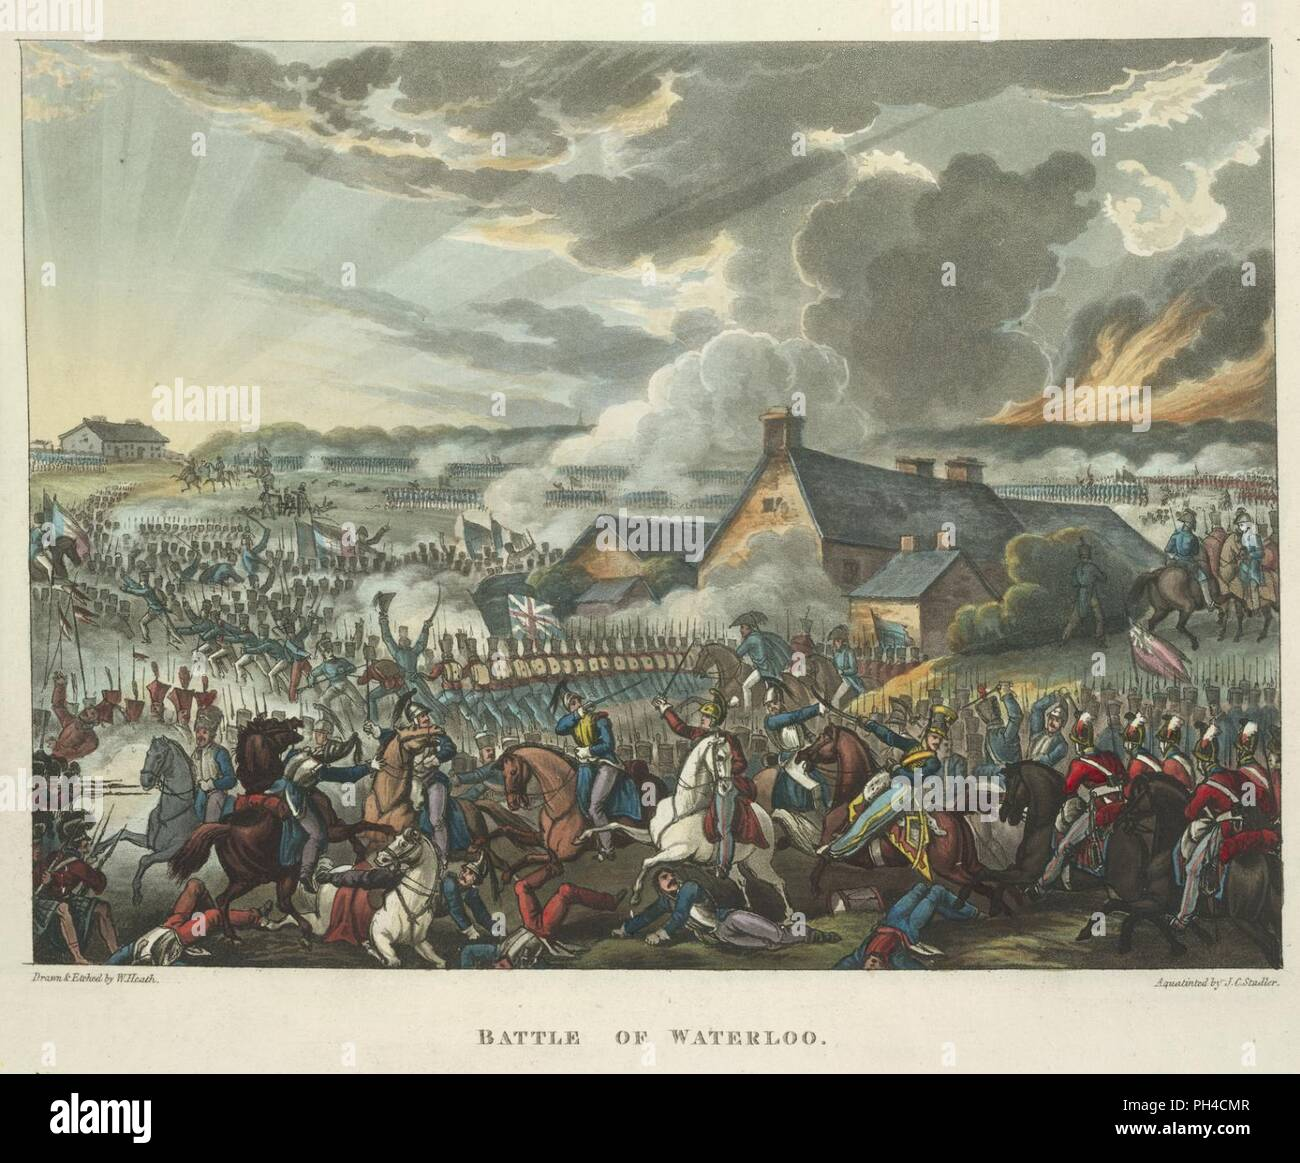 The wars of Wellington, a narrative poem . - 'The Battle of Waterloo, June 18th 1815. Depicting Arthur Wellesley, the Duke of Wellington. The defeat of the French forces of Napoleon Bonaparte. The last major battle of t0060. - Stock Image